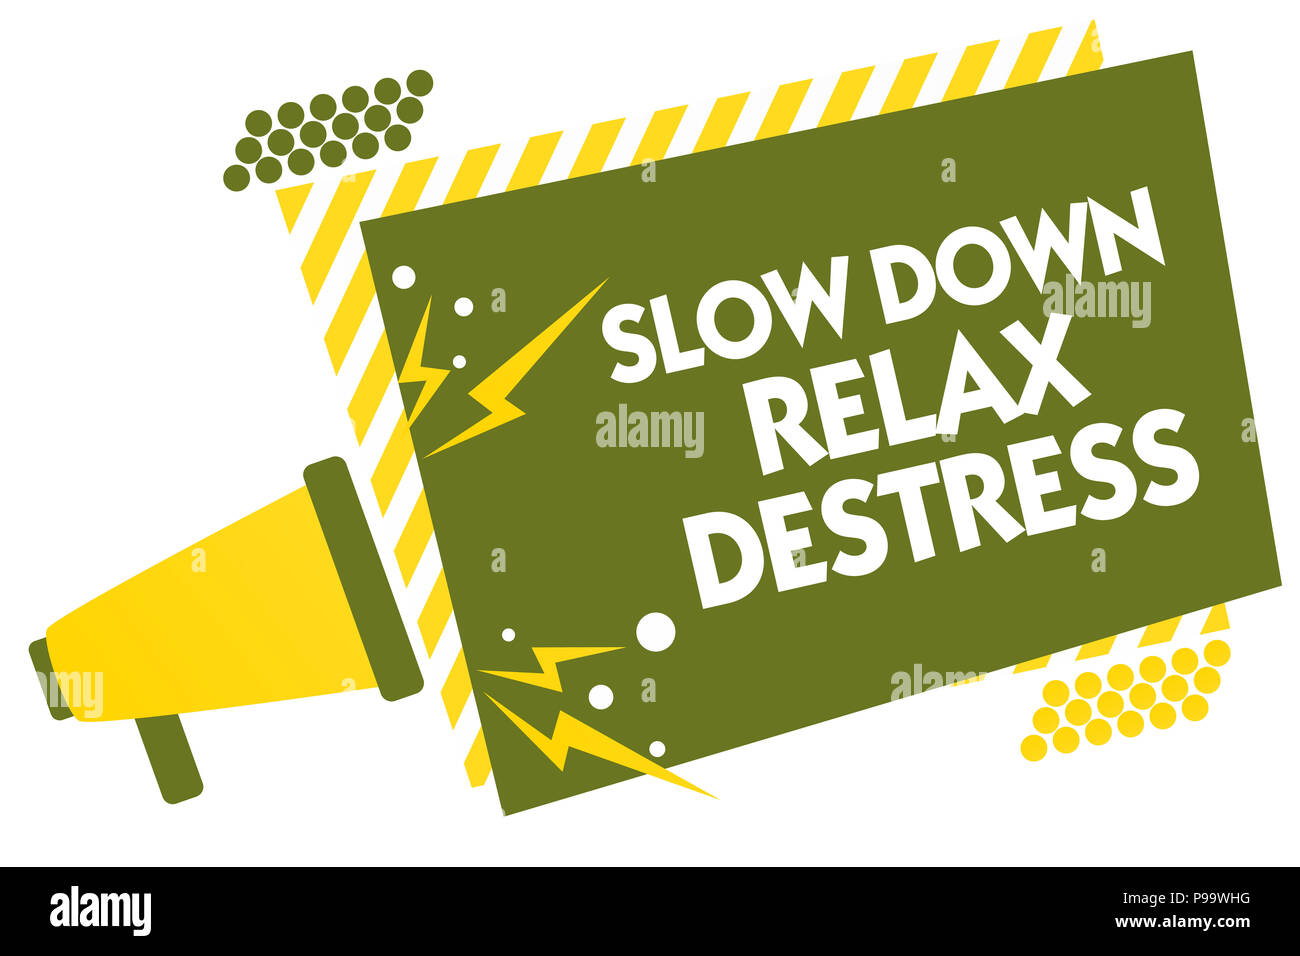 Writing note showing Slow Down Relax Destress. Business photo showcasing calming bring happiness and put you in good mood Megaphone loudspeaker yellow Stock Photo